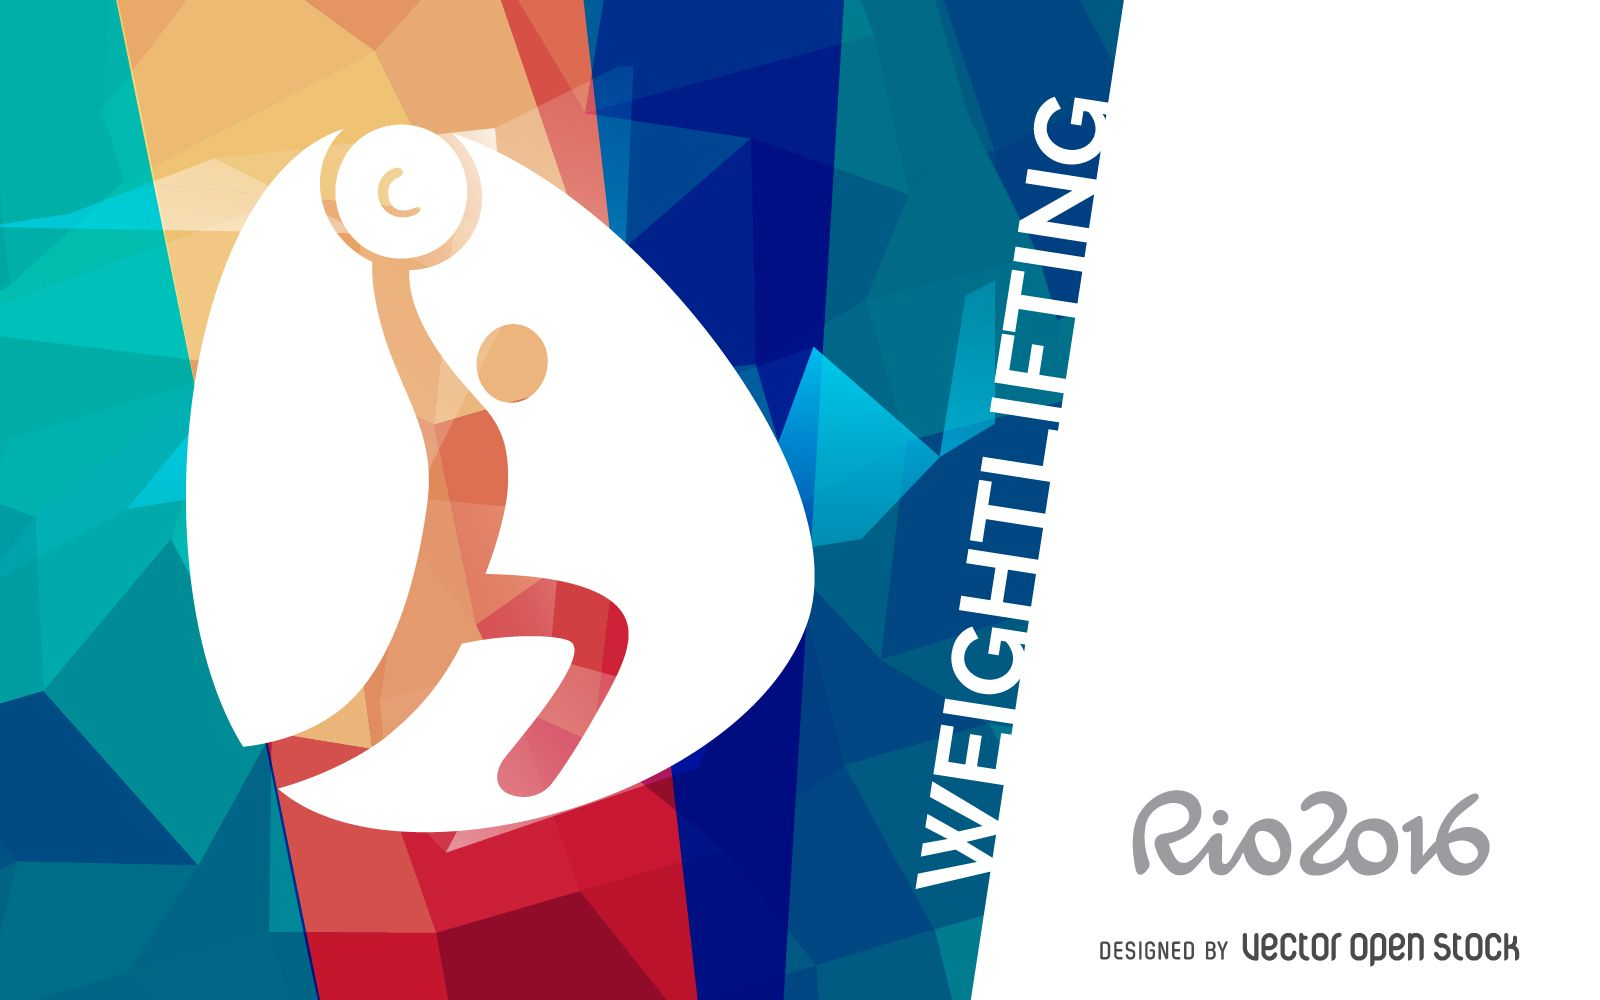 Olympic rings logo rio 2016 olympics logo designed by fred gelli - Bright Rio 2016 Design Featuring The Official Weightlifting Pictogram Design Includes Rio 2016 Logo At The Left Side And It Also Says Weightlifting In Big